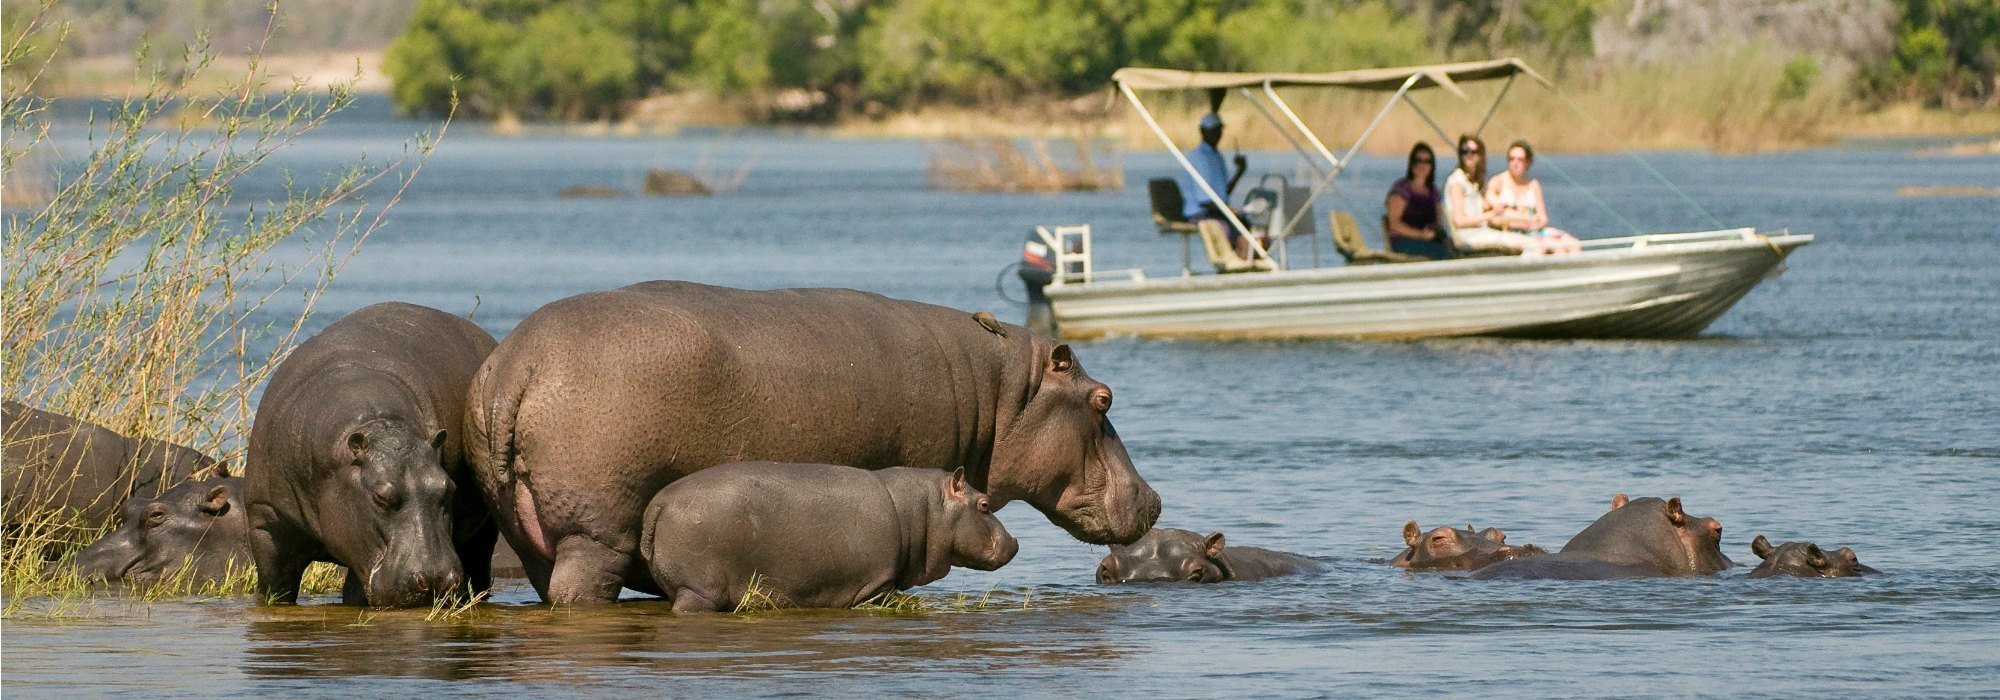 Zambezi River boat safari